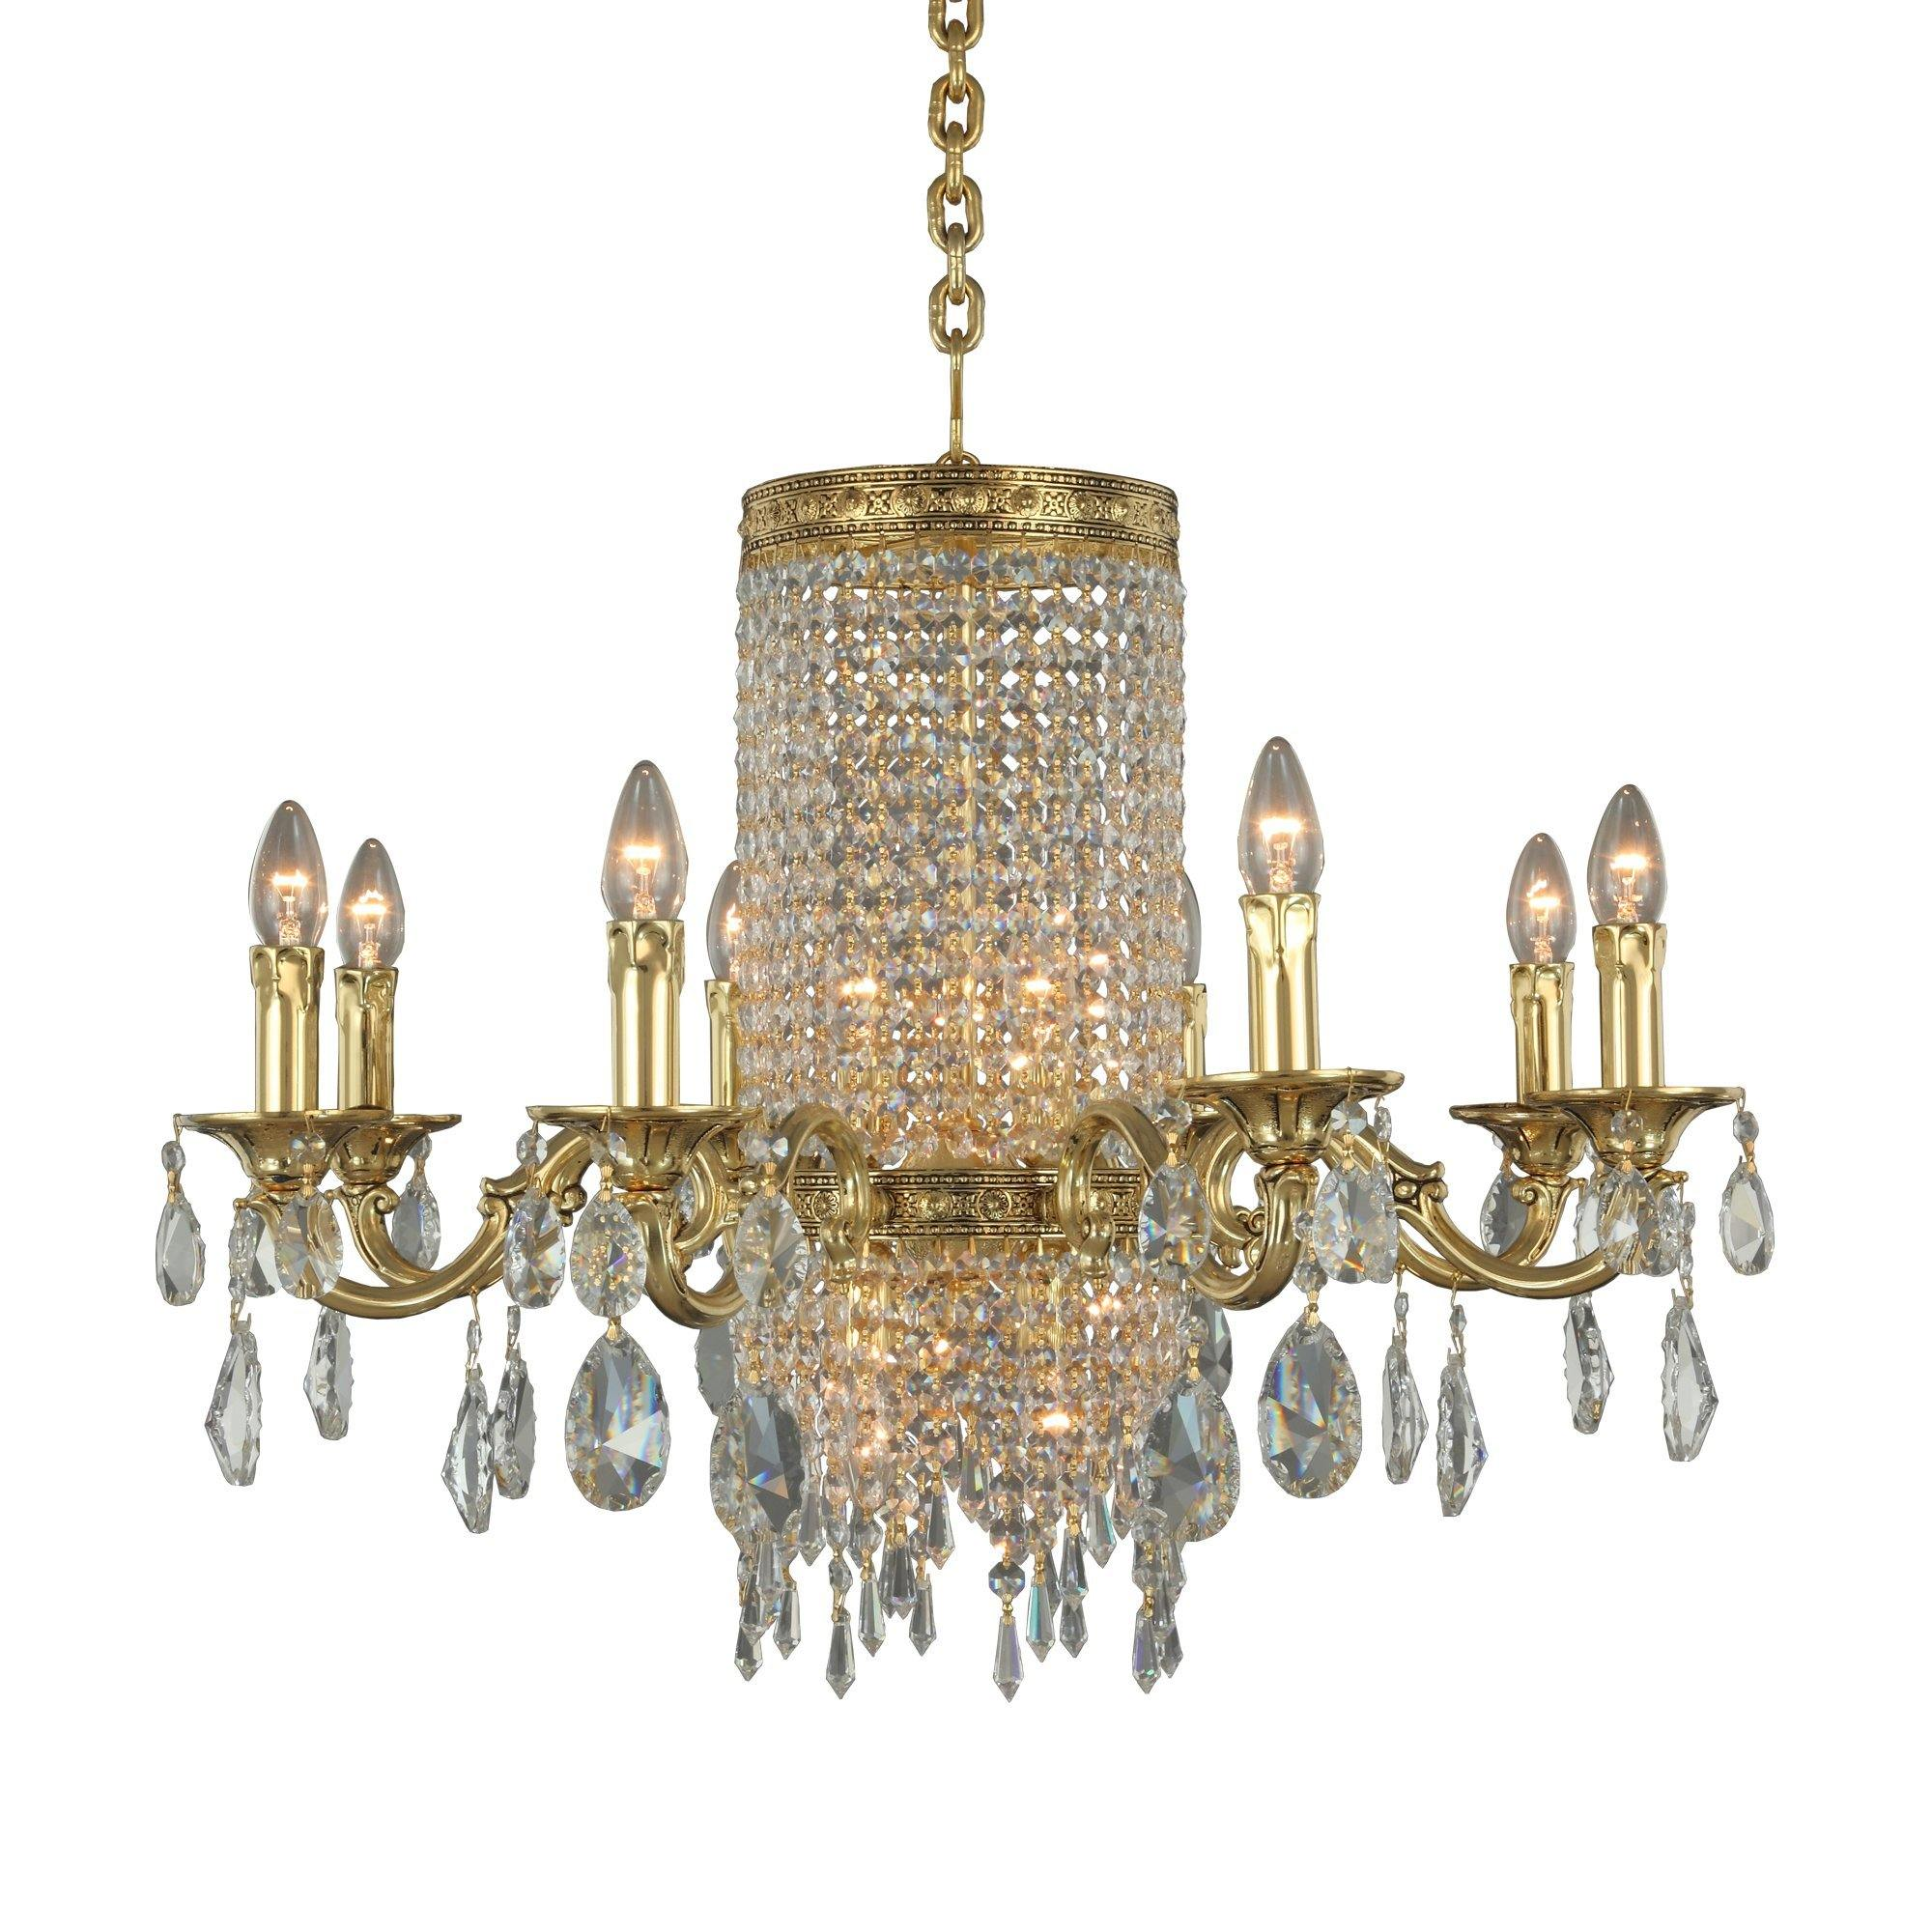 Asfour Crystal - Brass Chandelier - Chandelier - Gold Ox. - Pendeloque